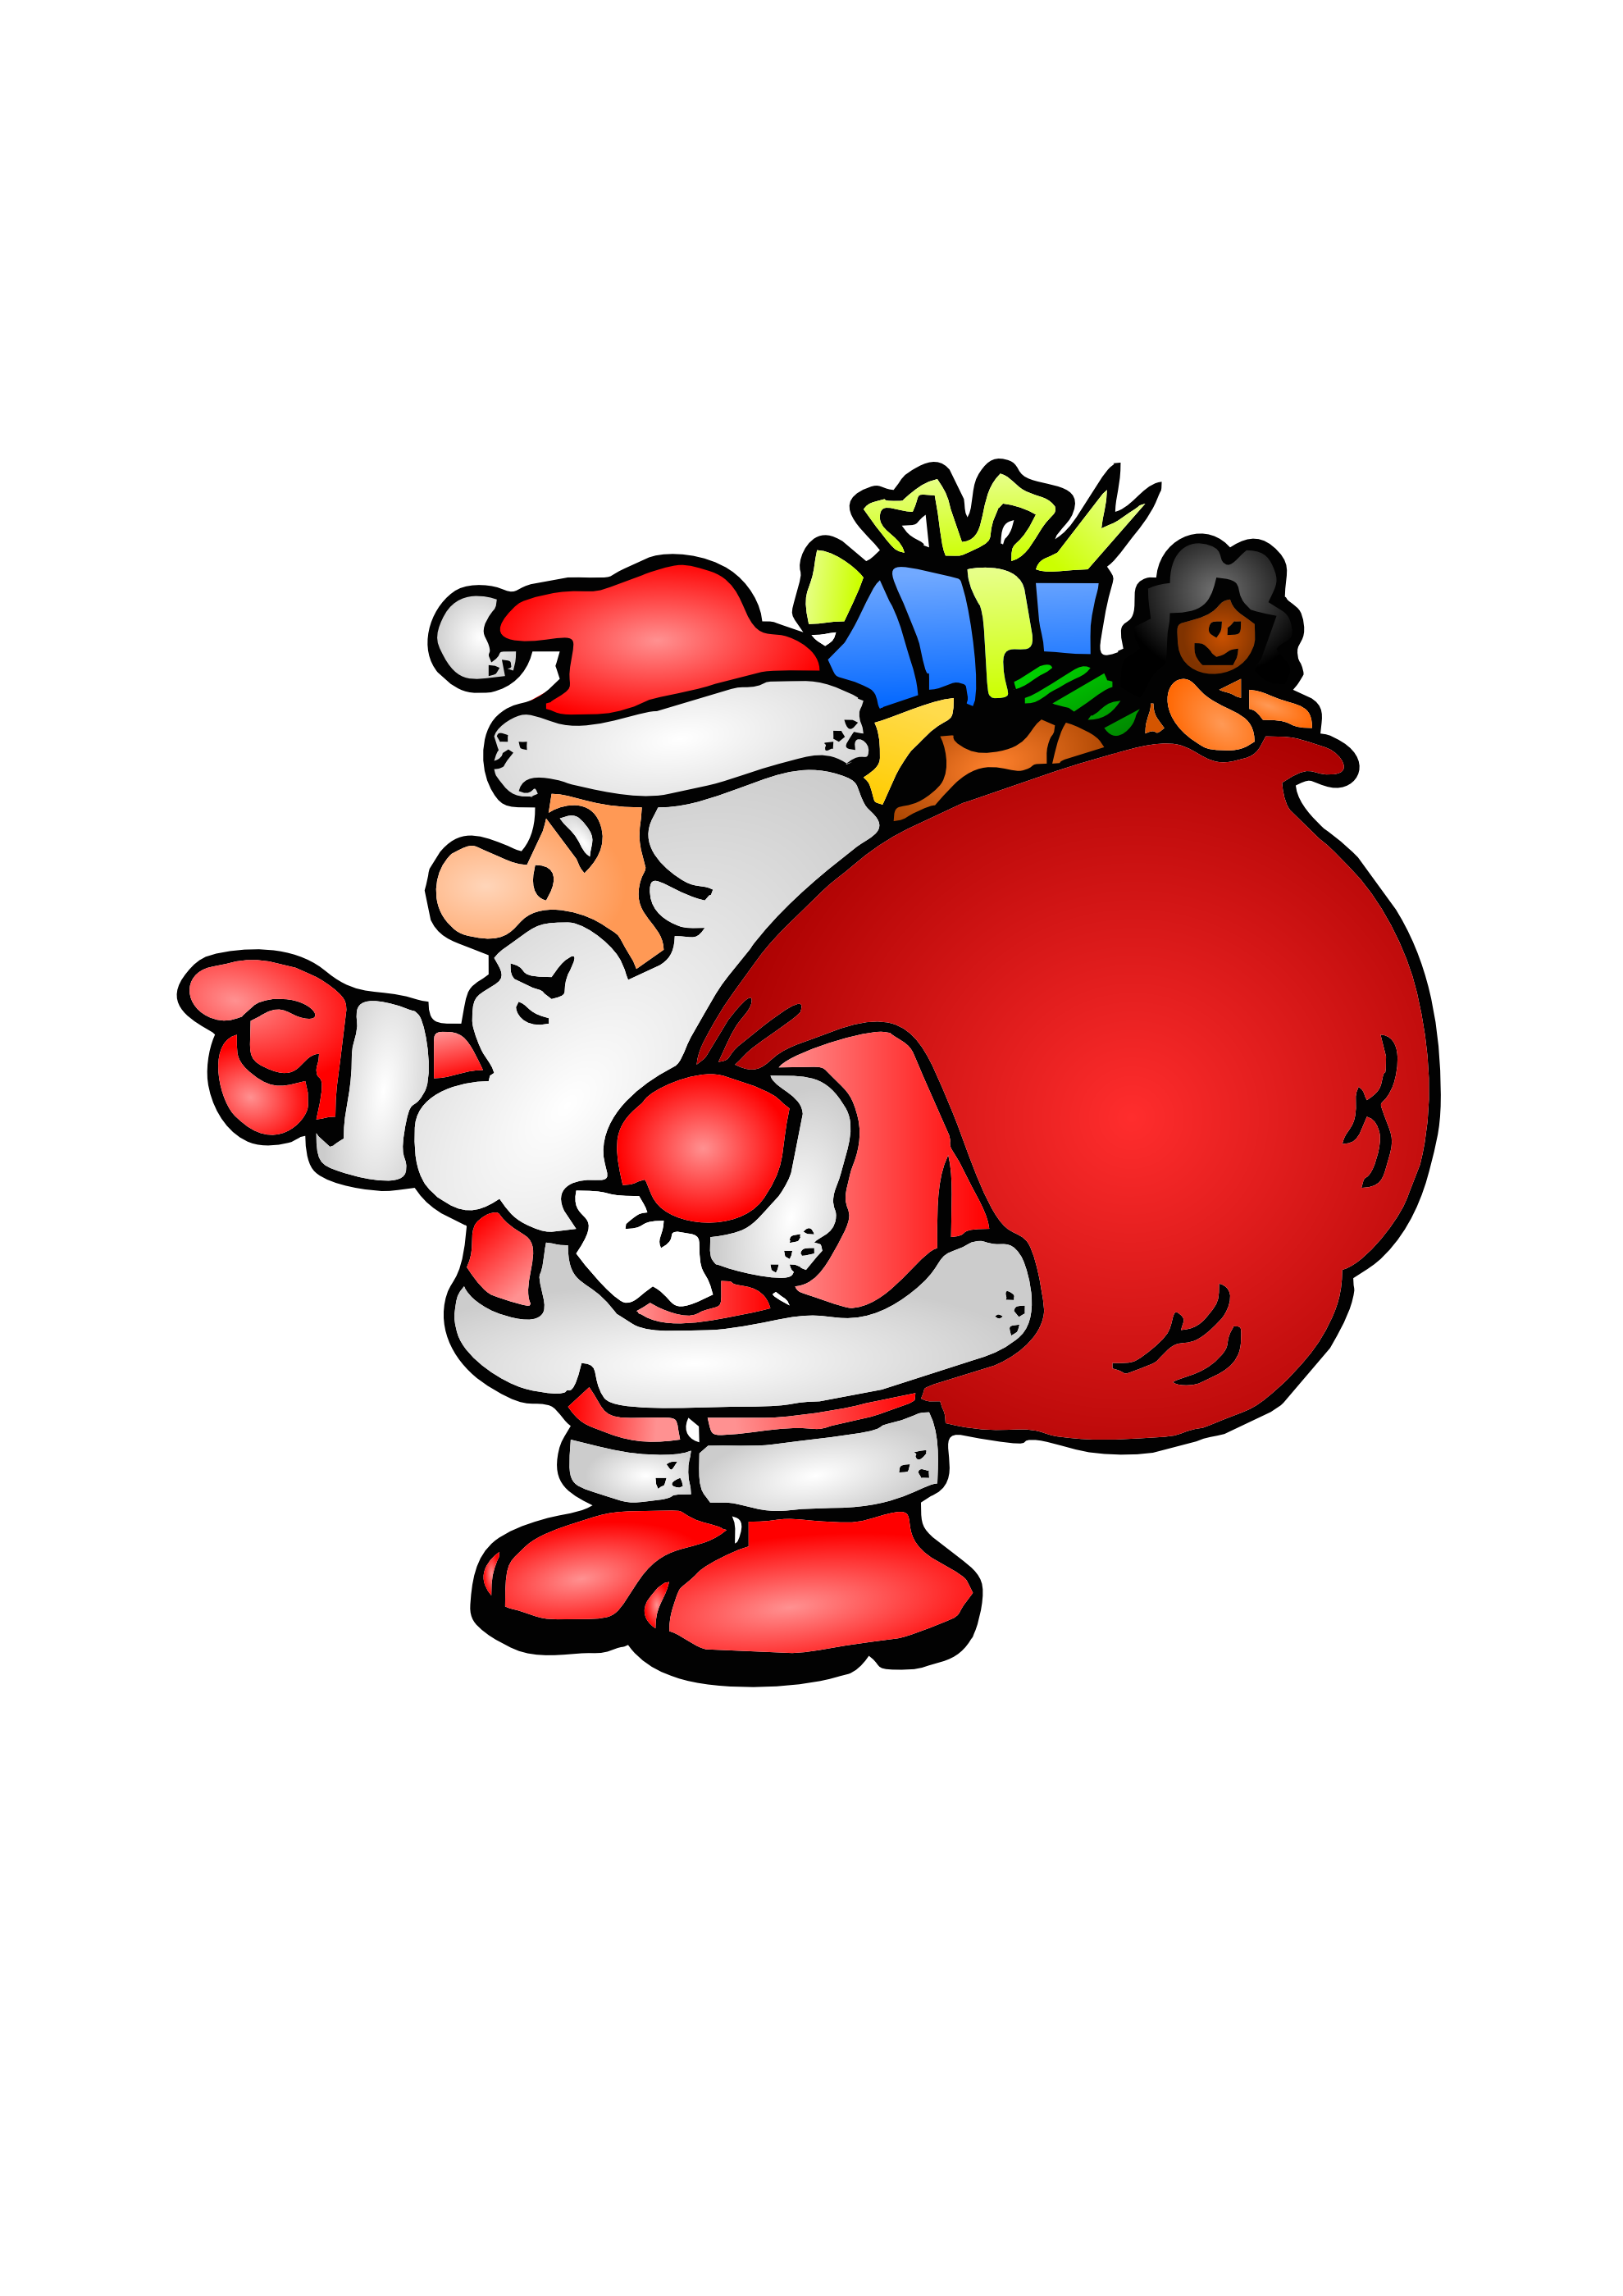 Santa Claus Clip Art Animated   Clipart Panda   Free Clipart Images